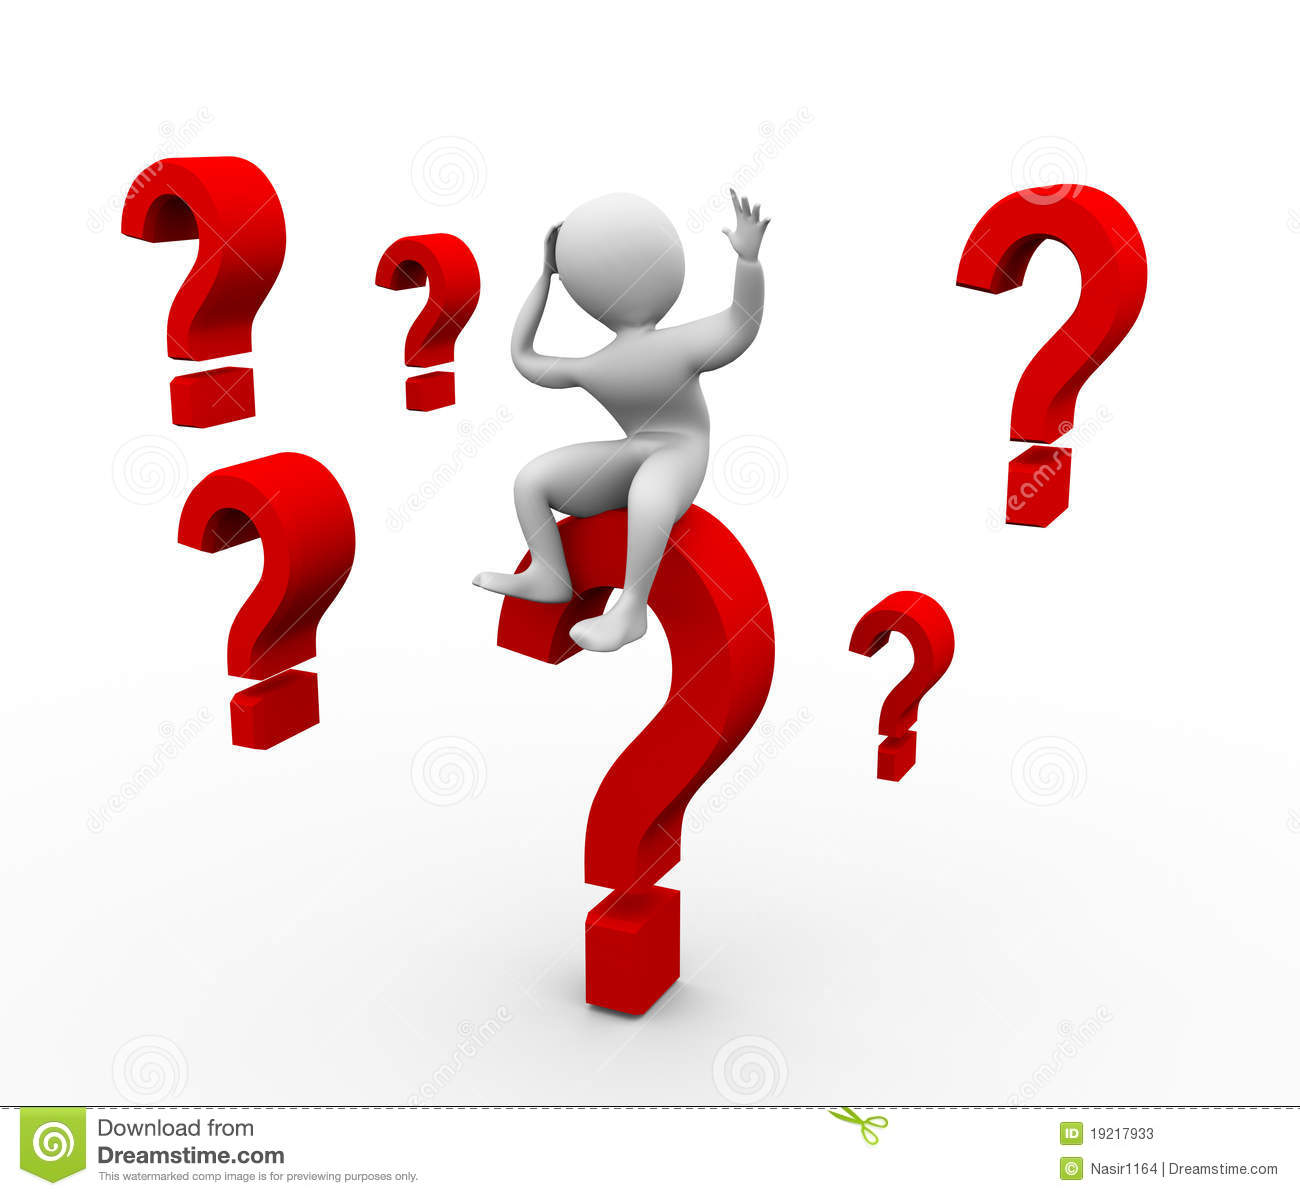 question stock image question stock photos image 19217933 8634